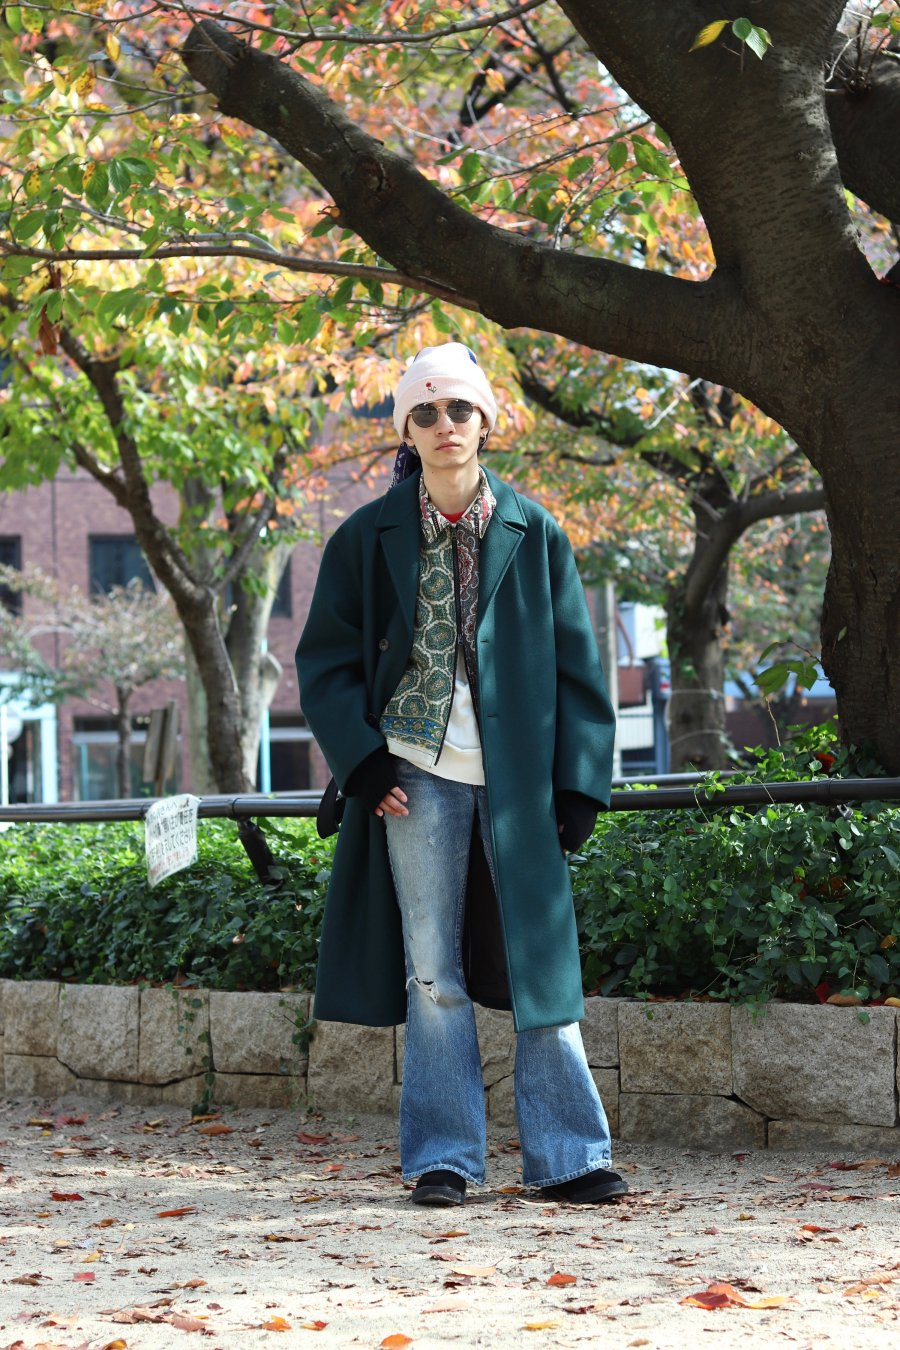 【20%OFF】soe  Belted Wool Coat(GREEN)<img class='new_mark_img2' src='https://img.shop-pro.jp/img/new/icons20.gif' style='border:none;display:inline;margin:0px;padding:0px;width:auto;' />